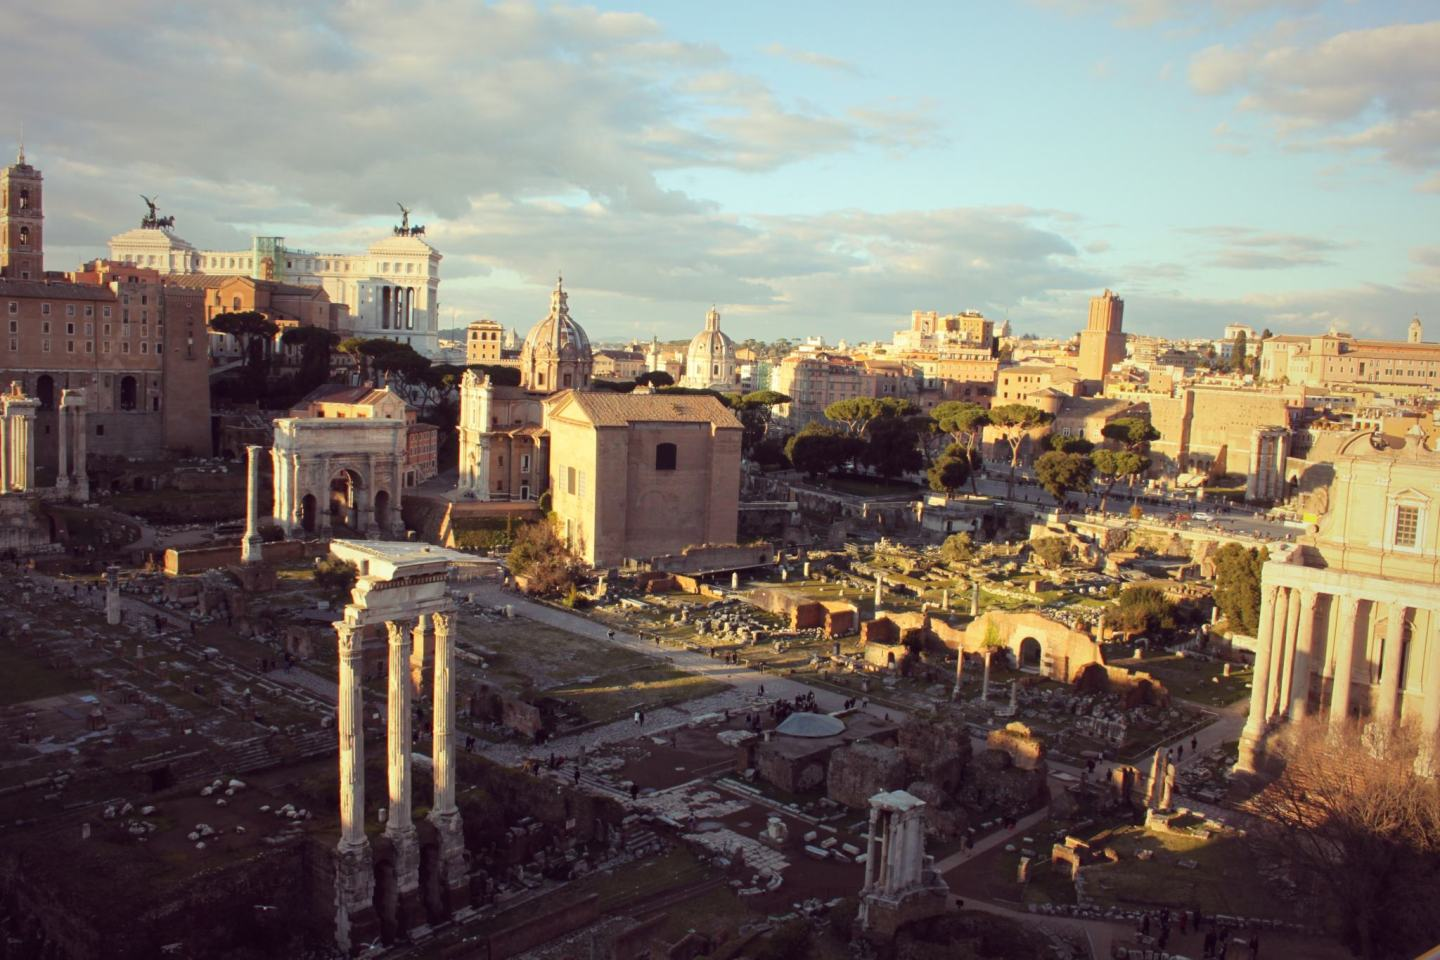 How to Fully Explore Rome on a Budget